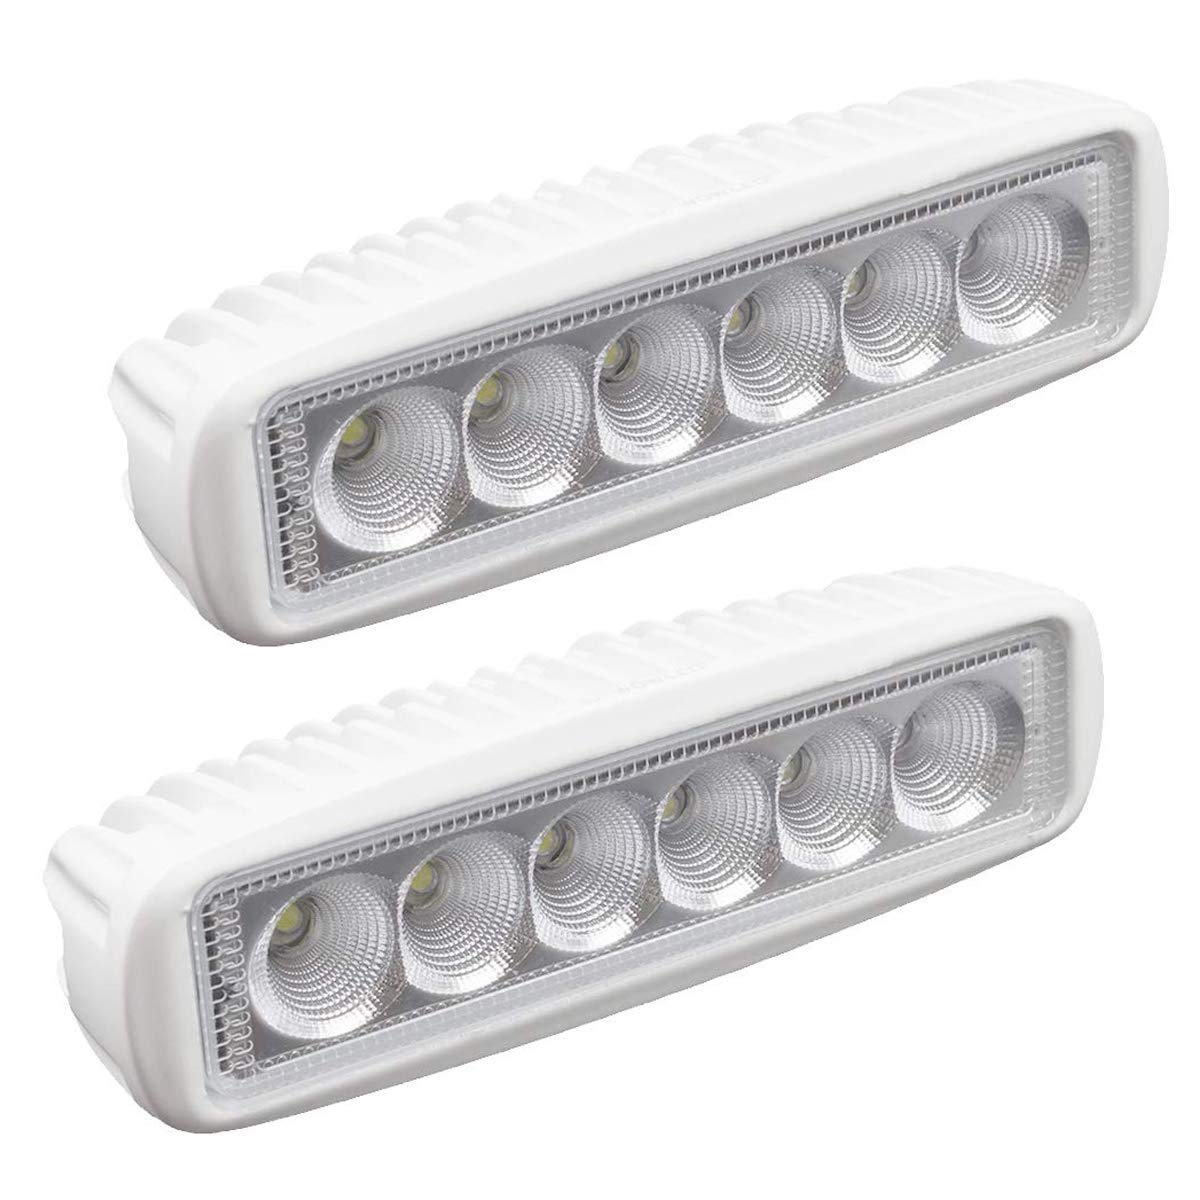 WFPOWER Boat Light 2 Pack, LED Marine Spotlights Waterproof, 6 inch Deck Dock Flood Light for Boat Accessories Pontoon Fishing Truck SUV ATV 12V White by WFPOWER